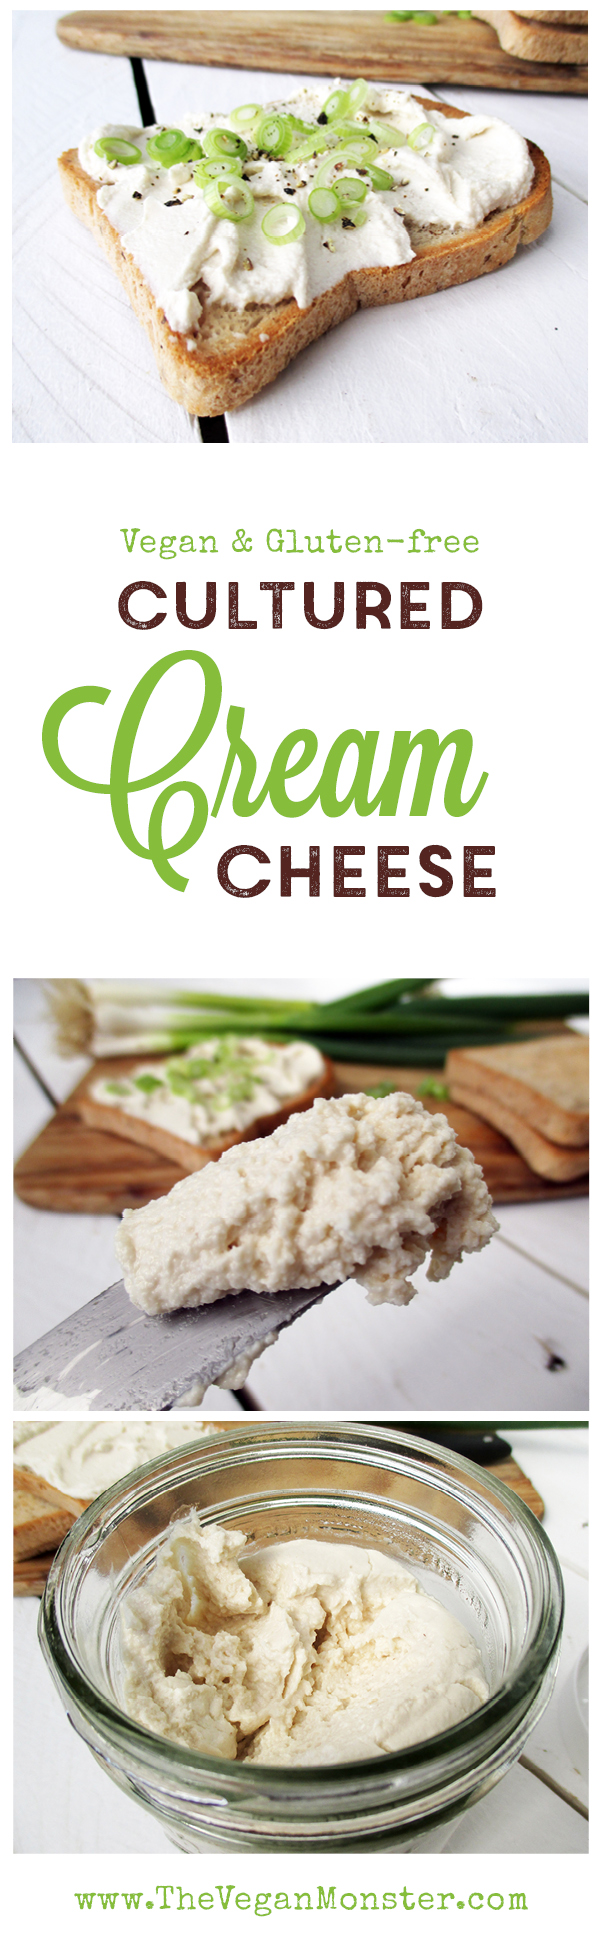 Vegan Gluten-free Dairy-free Soy-free Cultured Cashew Cream Cheese Recipe Streickaese Rezept